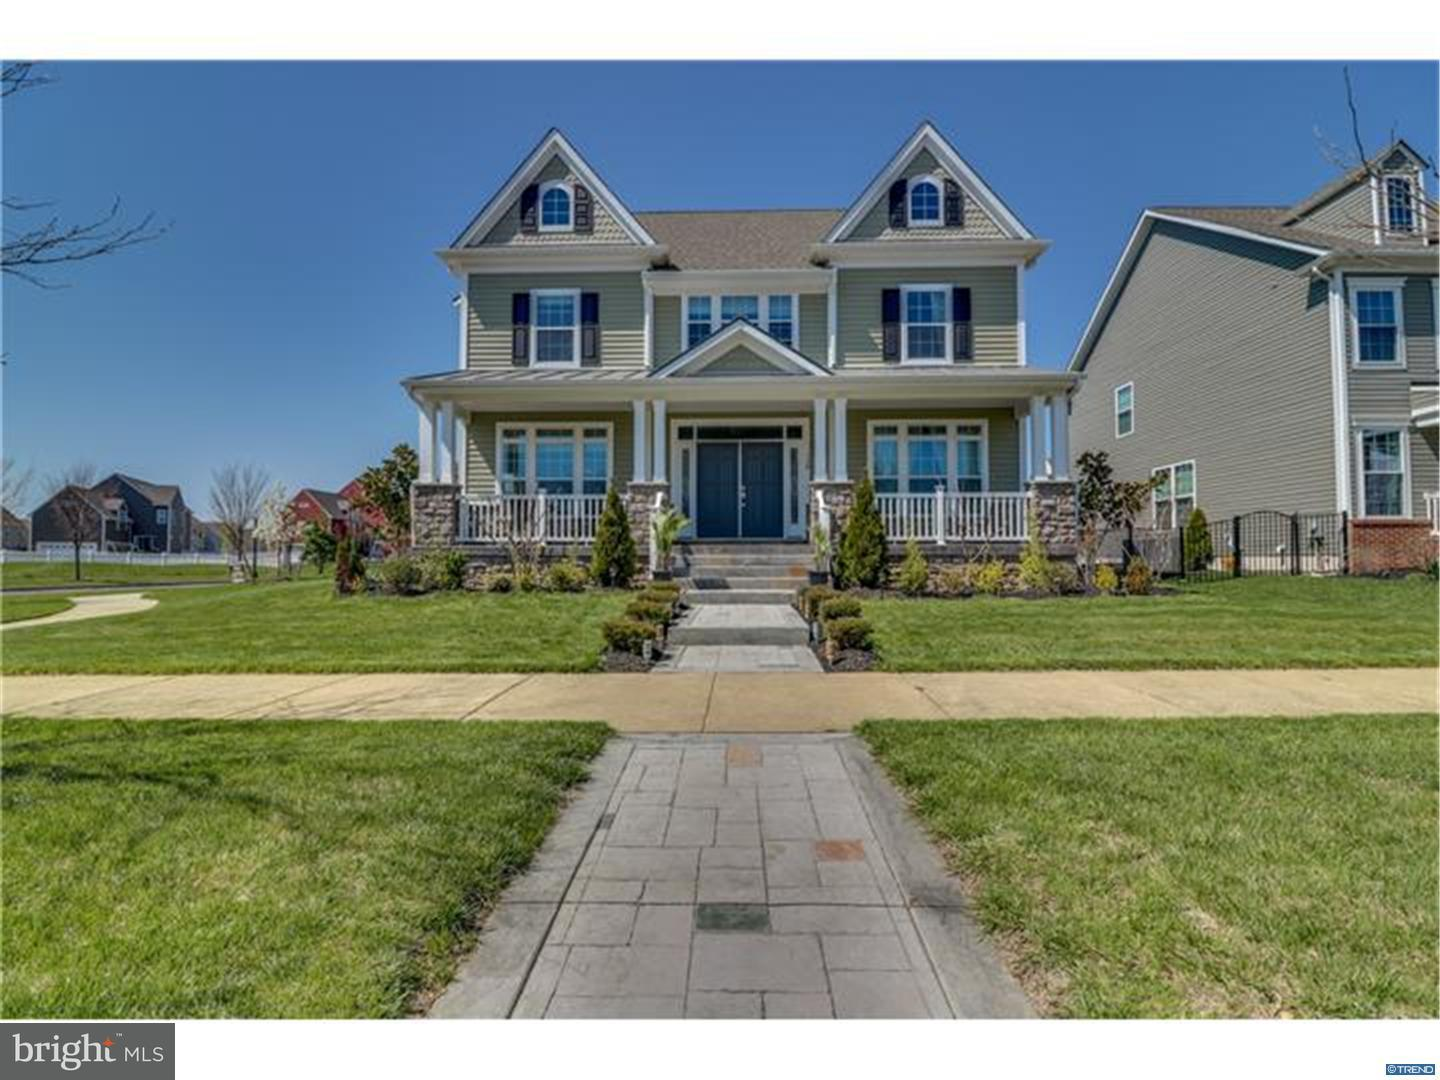 728 Idlewyld Drive Middletown, DE 19709